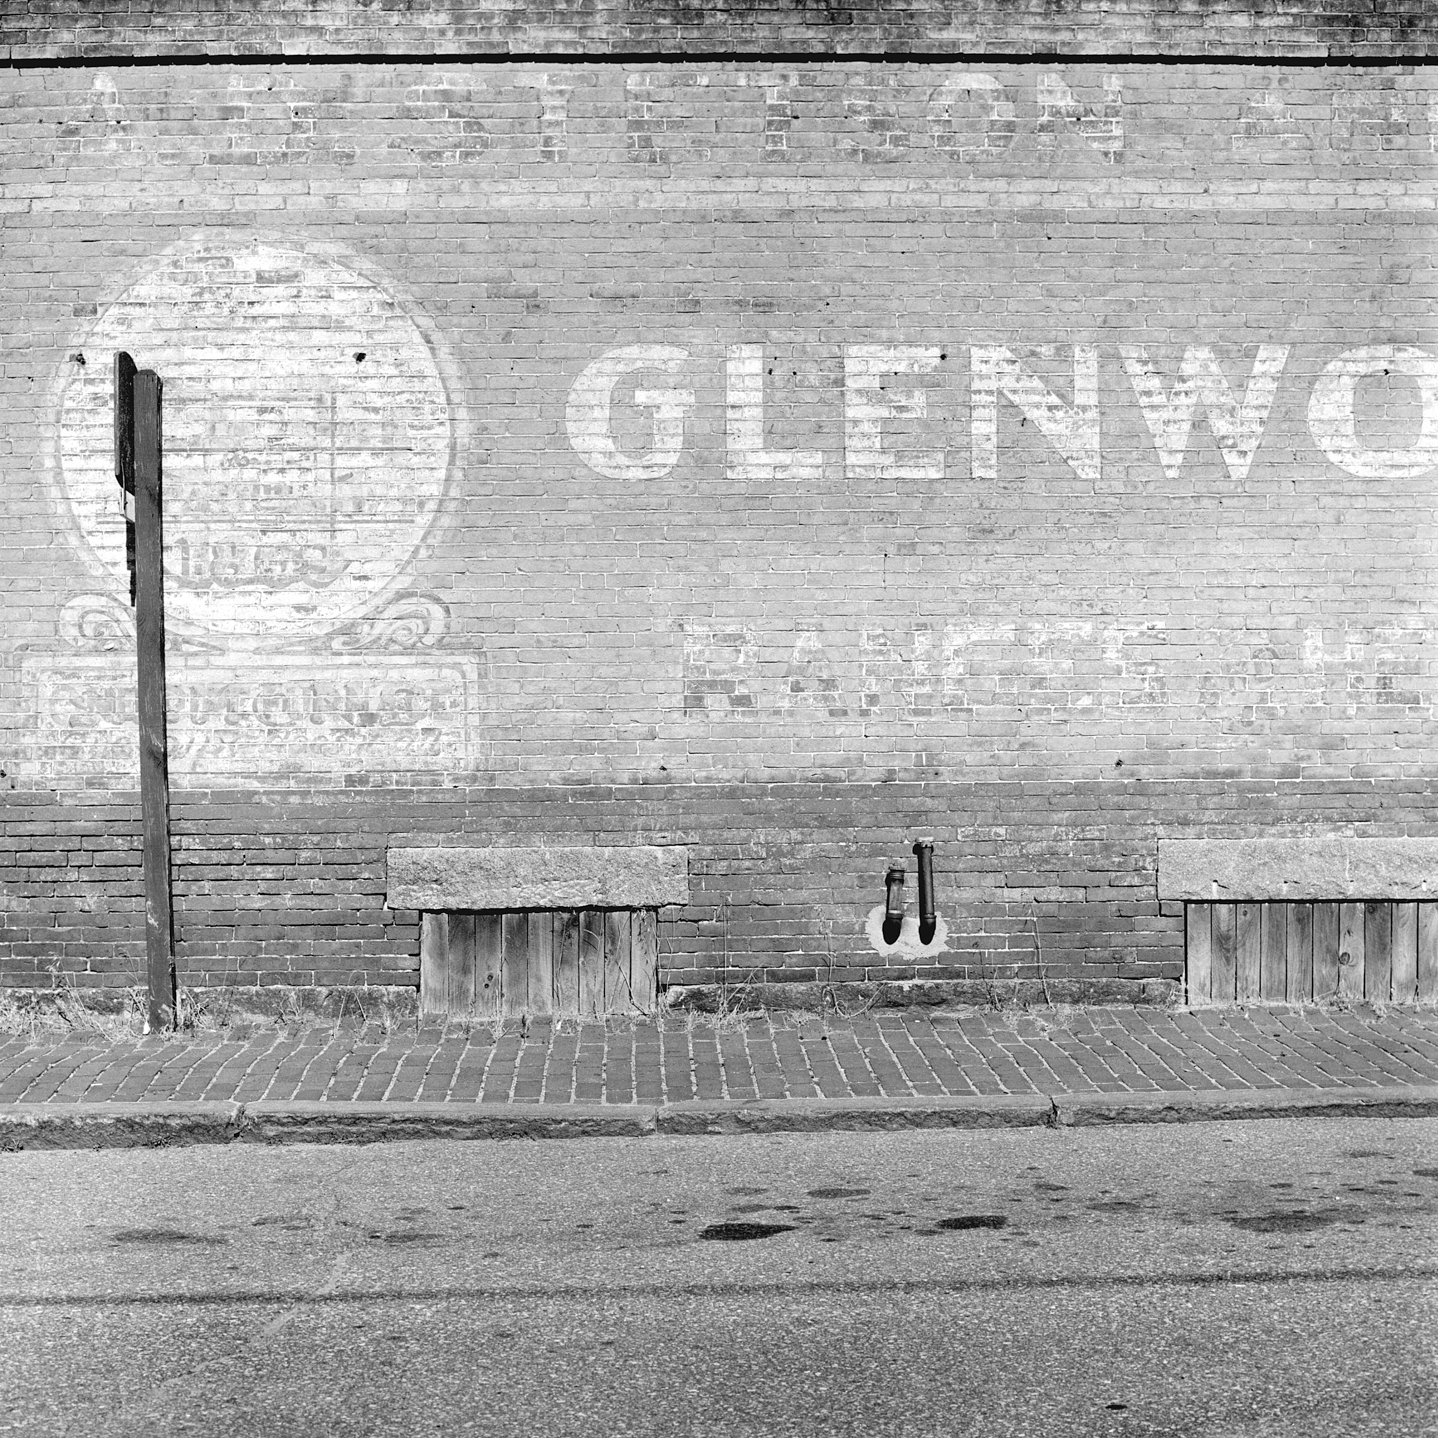 Glenwood Wall, Bath, ME, 2002